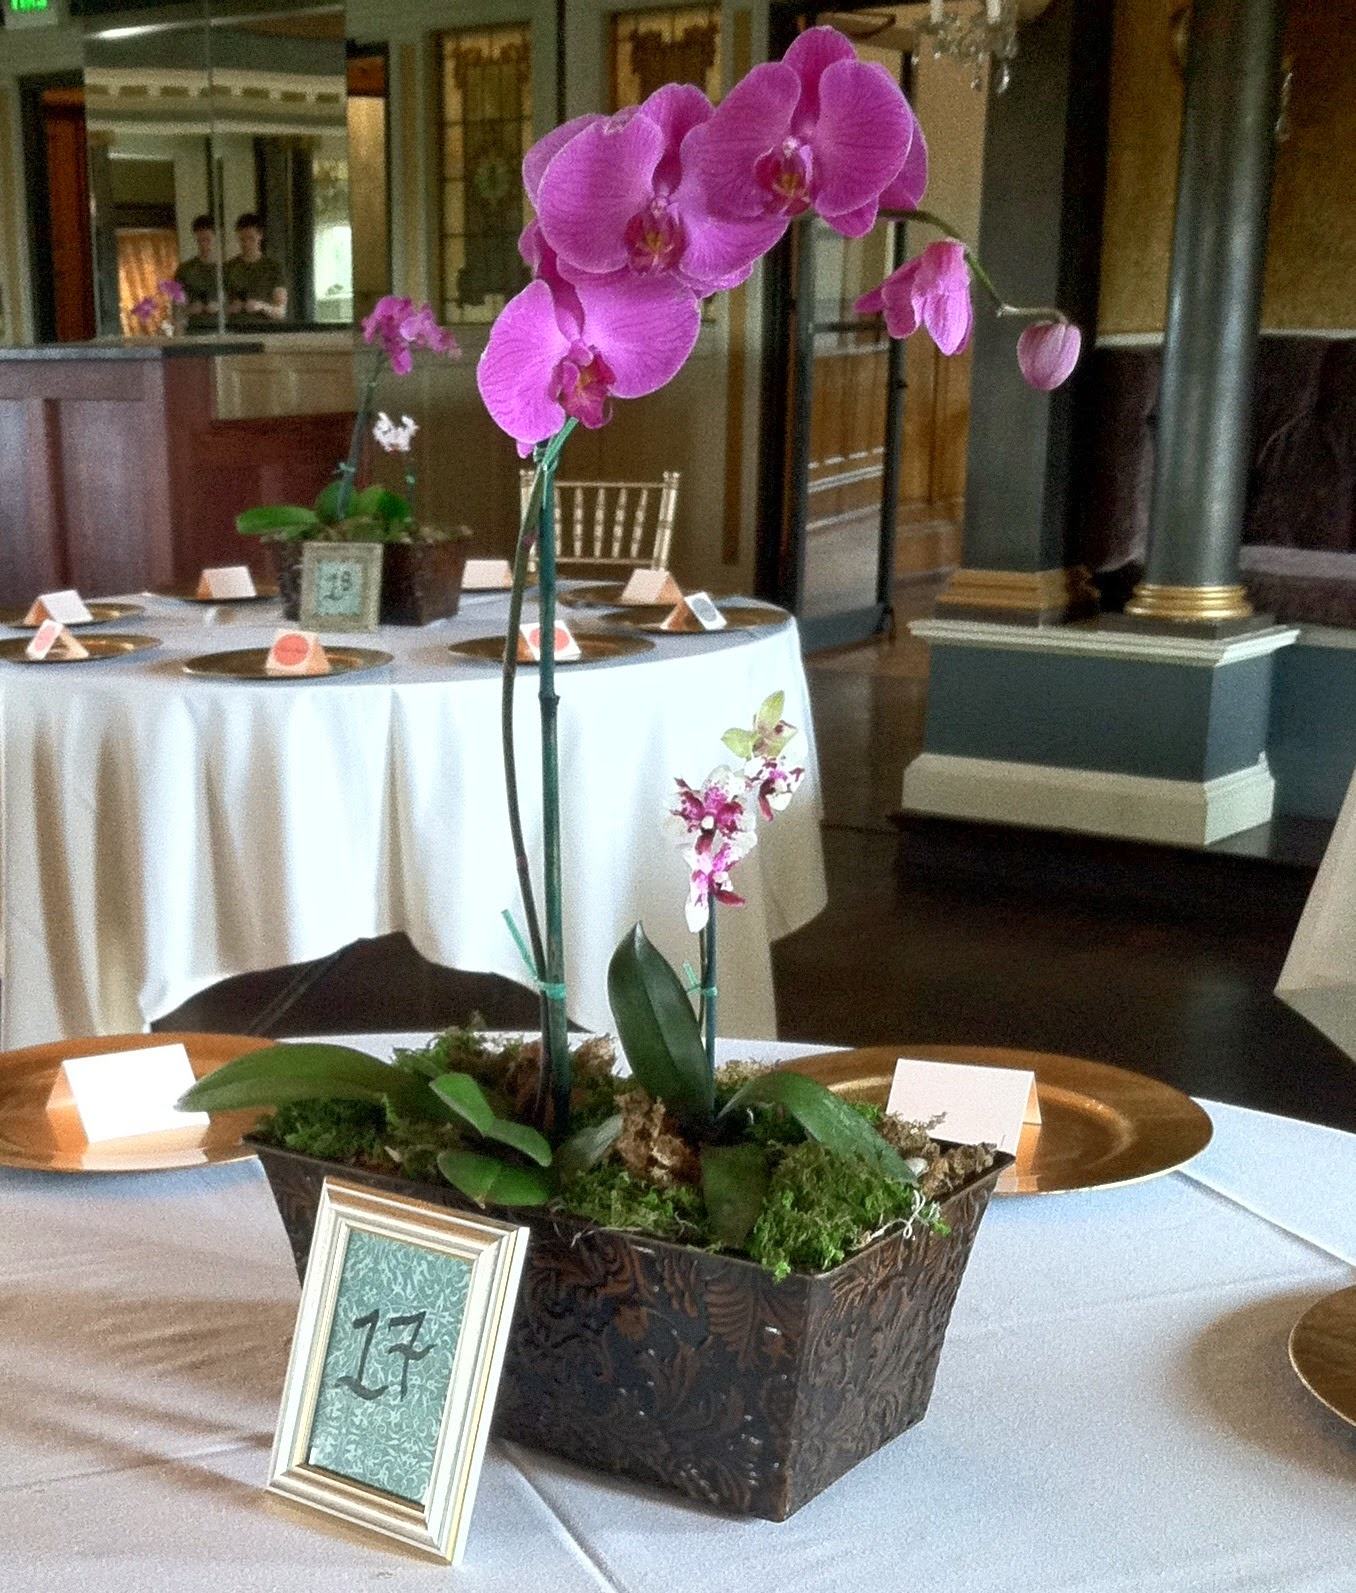 Chuck does art wedding centerpieces orchids